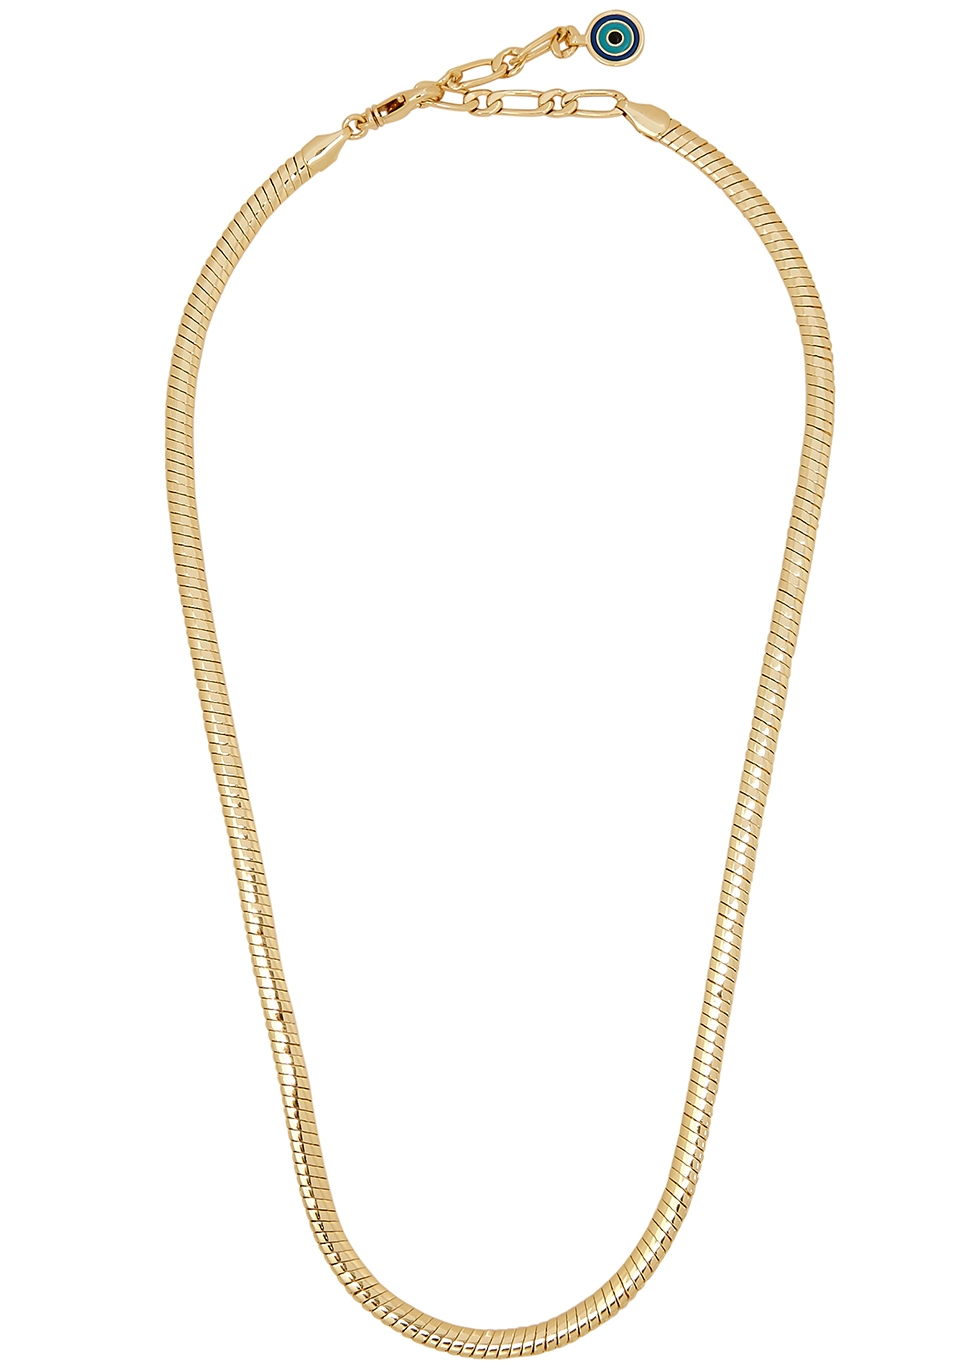 Mavi 14kt gold-dipped chain necklace